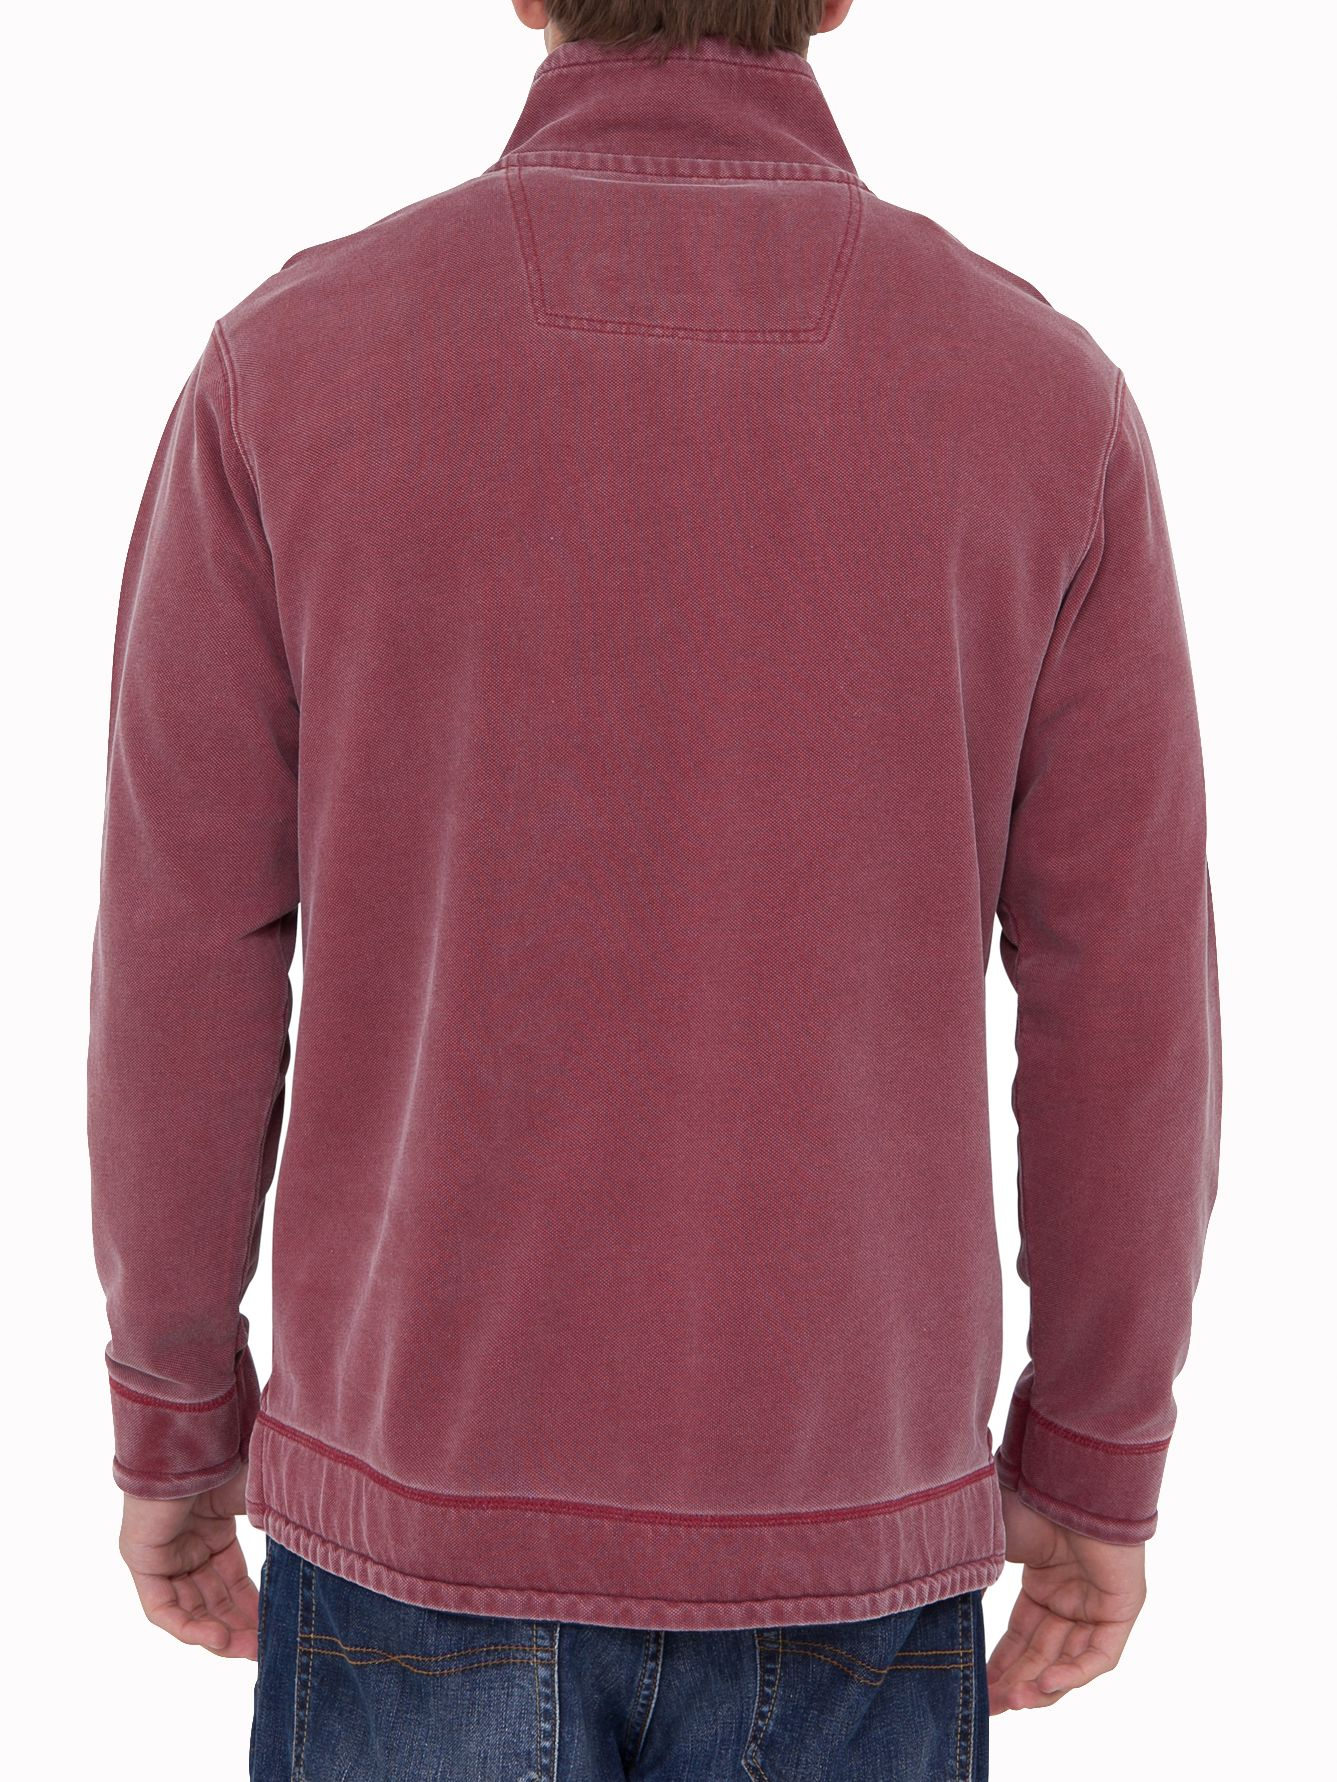 Plain 1/4 zip top